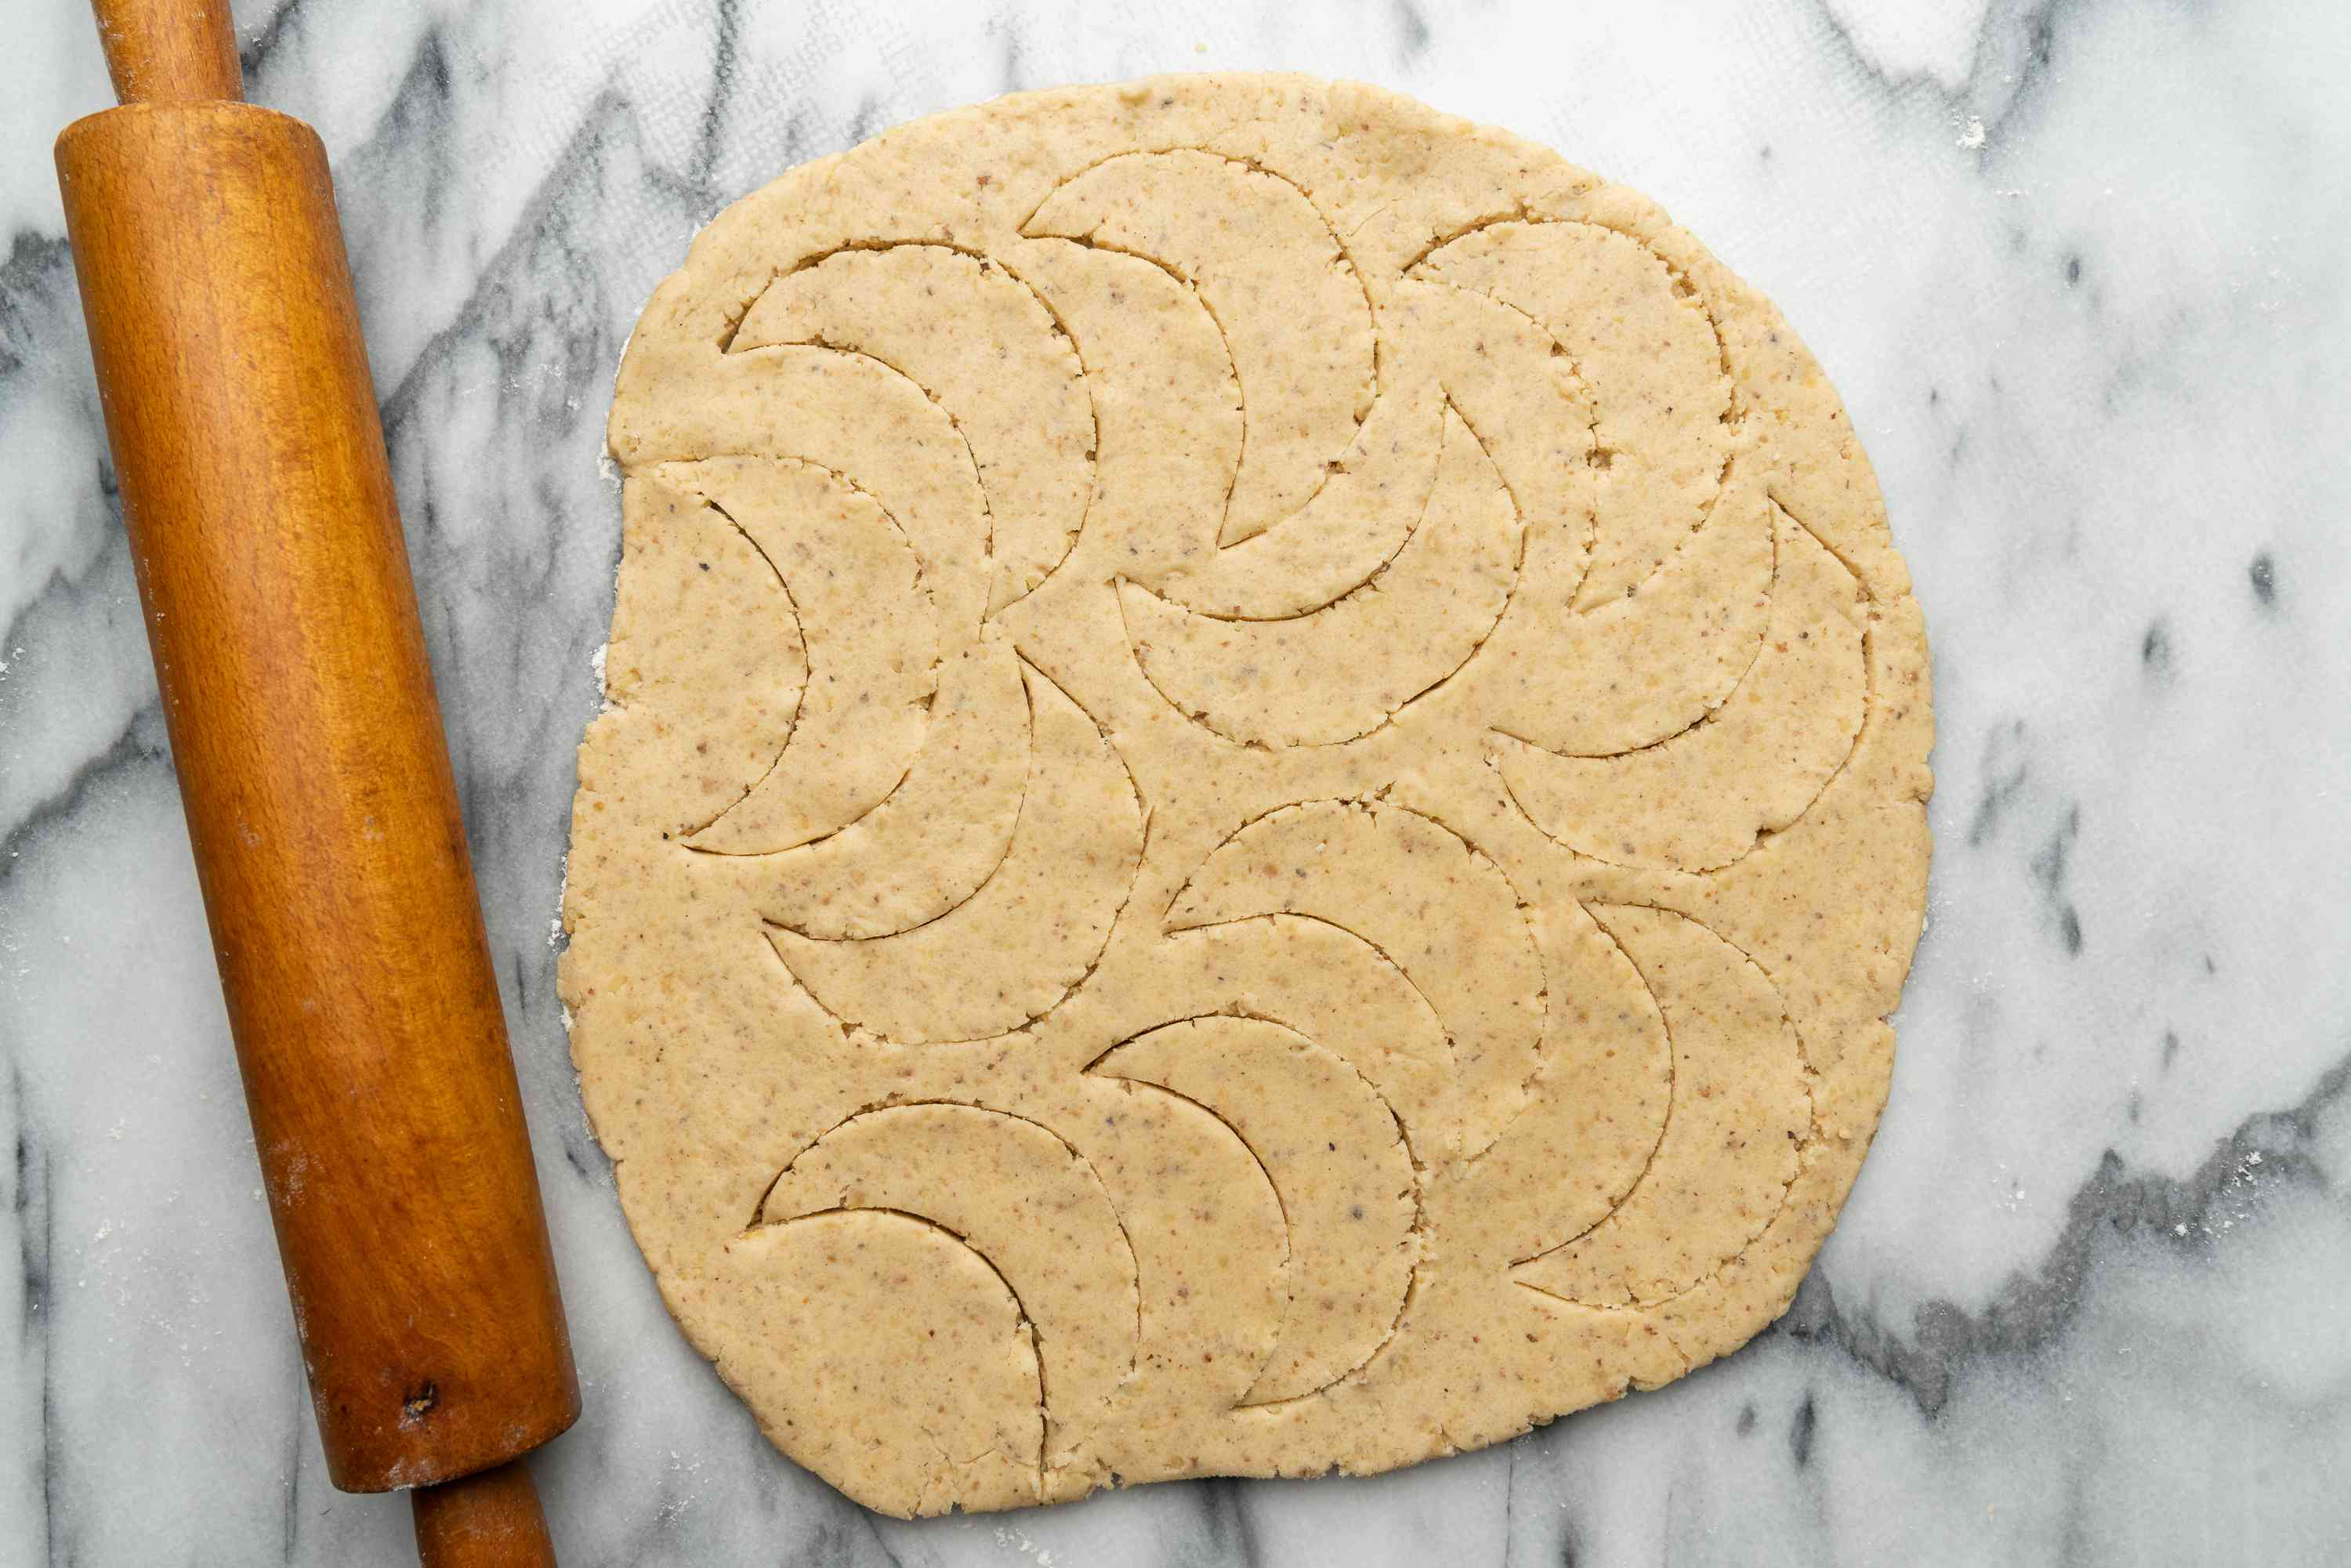 rolled out dough with crescent moon shapes cut out